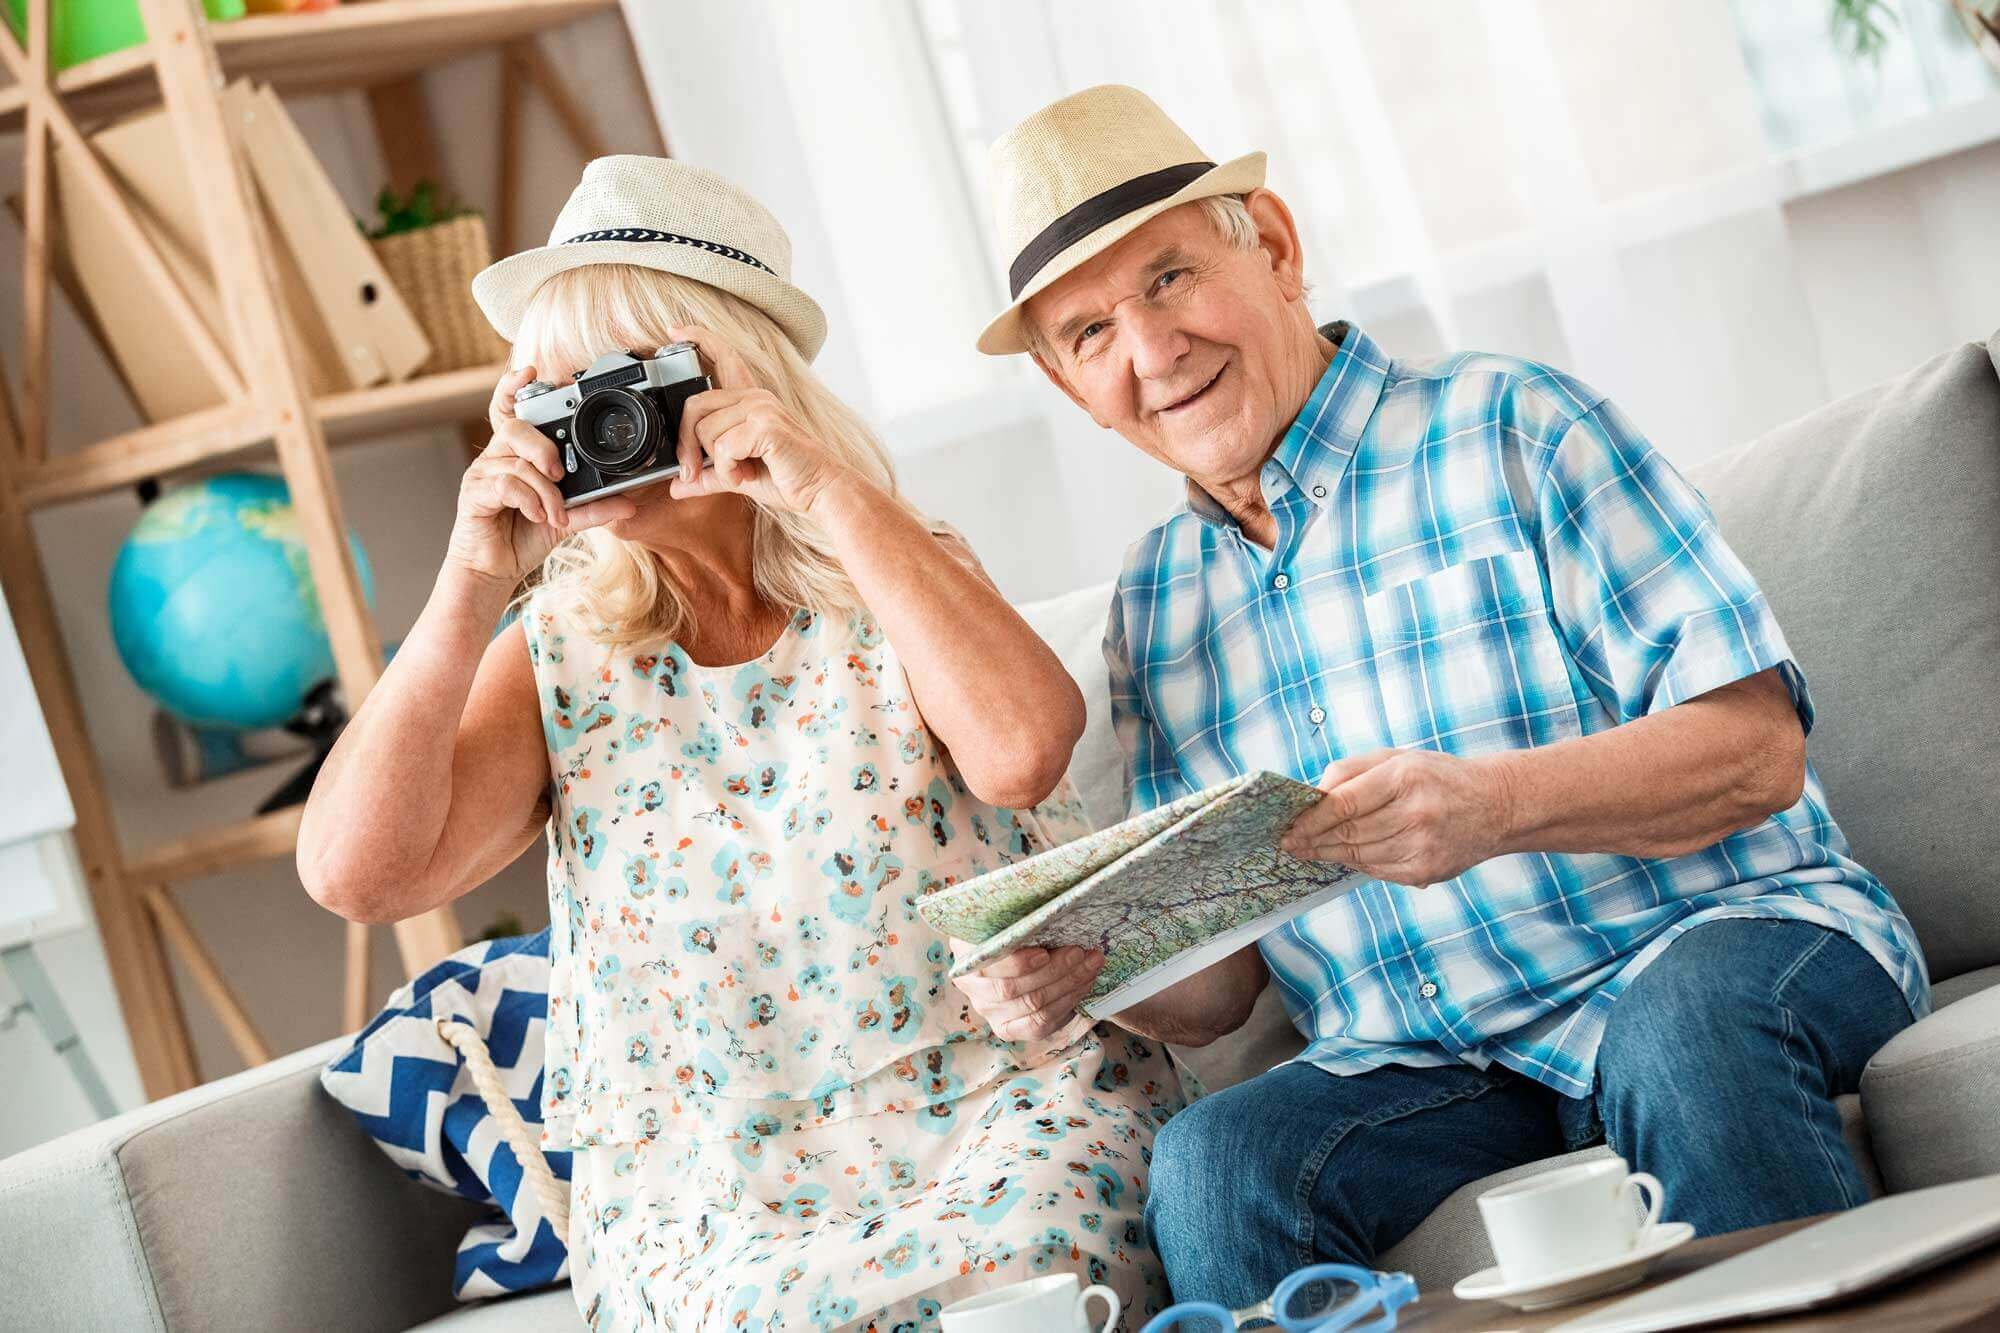 Woman takes photo with camera while husband smiles looking at a map